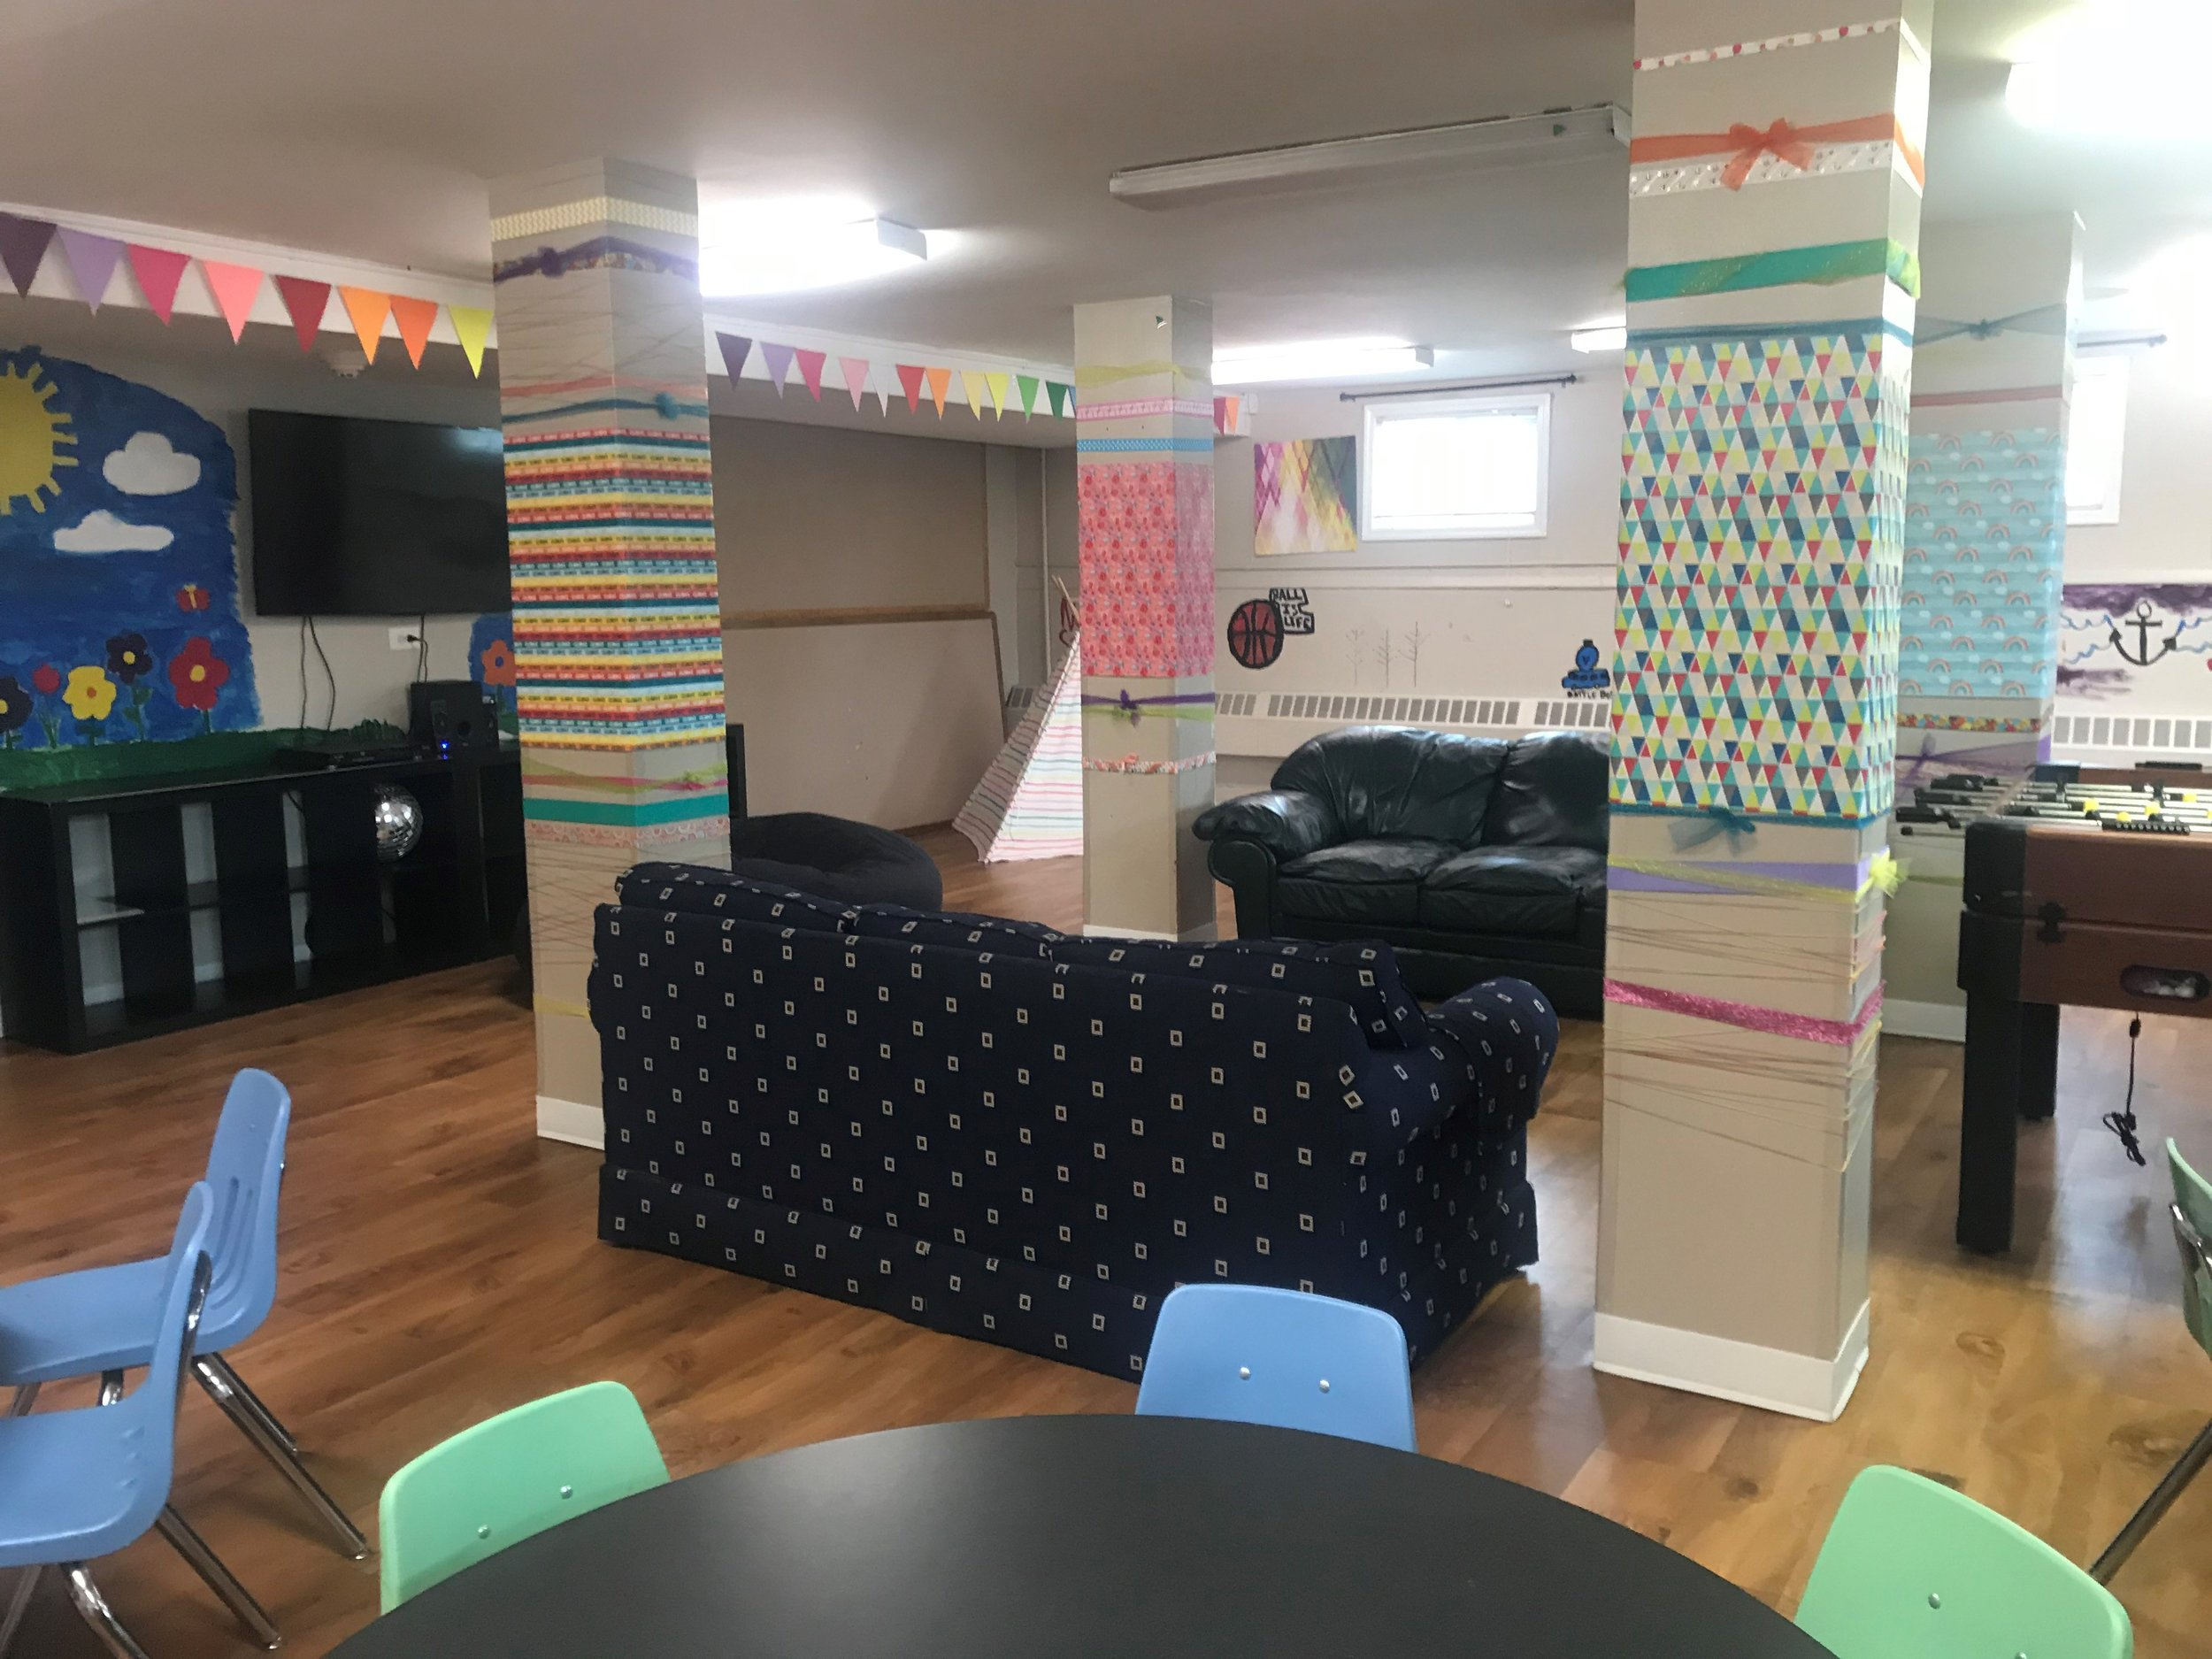 Marian Park Resident Service Coordinator Donna Iwicki worked to create an inviting space for her planned after school program for the apartment complex's youngest residents